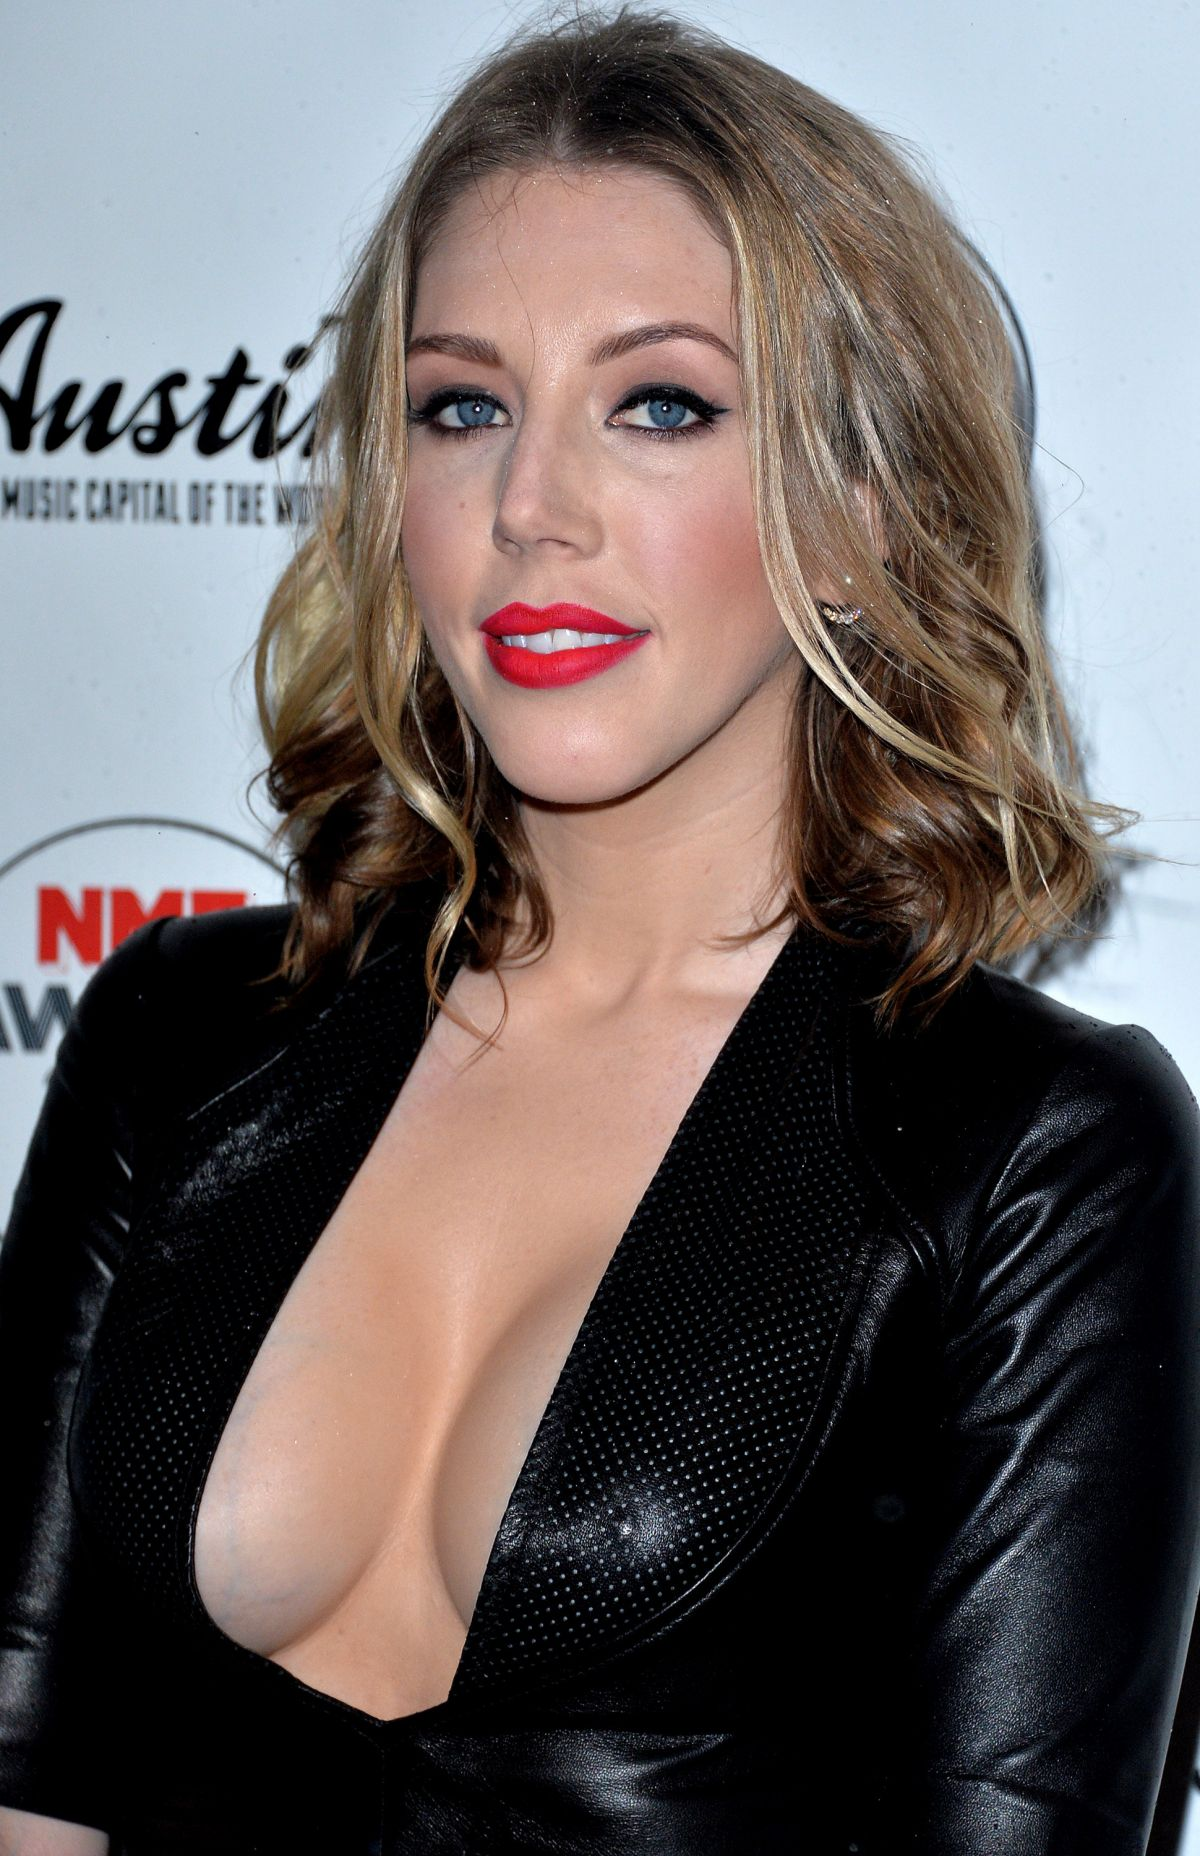 KATHERINE RYAN at NME 2016 Awards Afterparty in London 02/17/2016